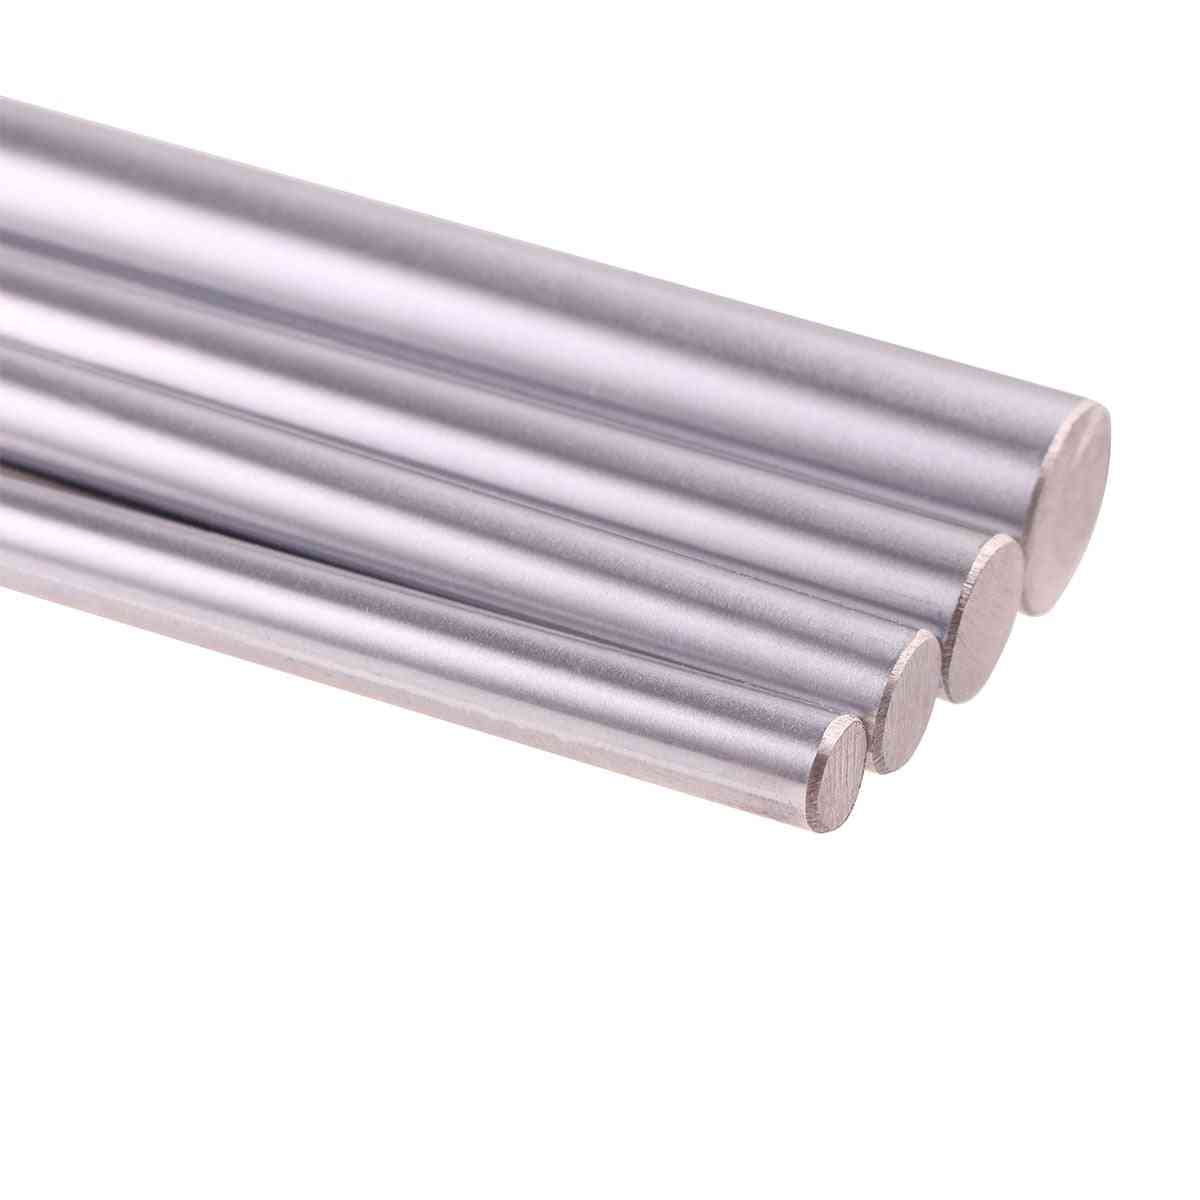 Optical Axis Od Linear Shaft Cylinder Rail Smooth Round Rod For 3d Printer Parts